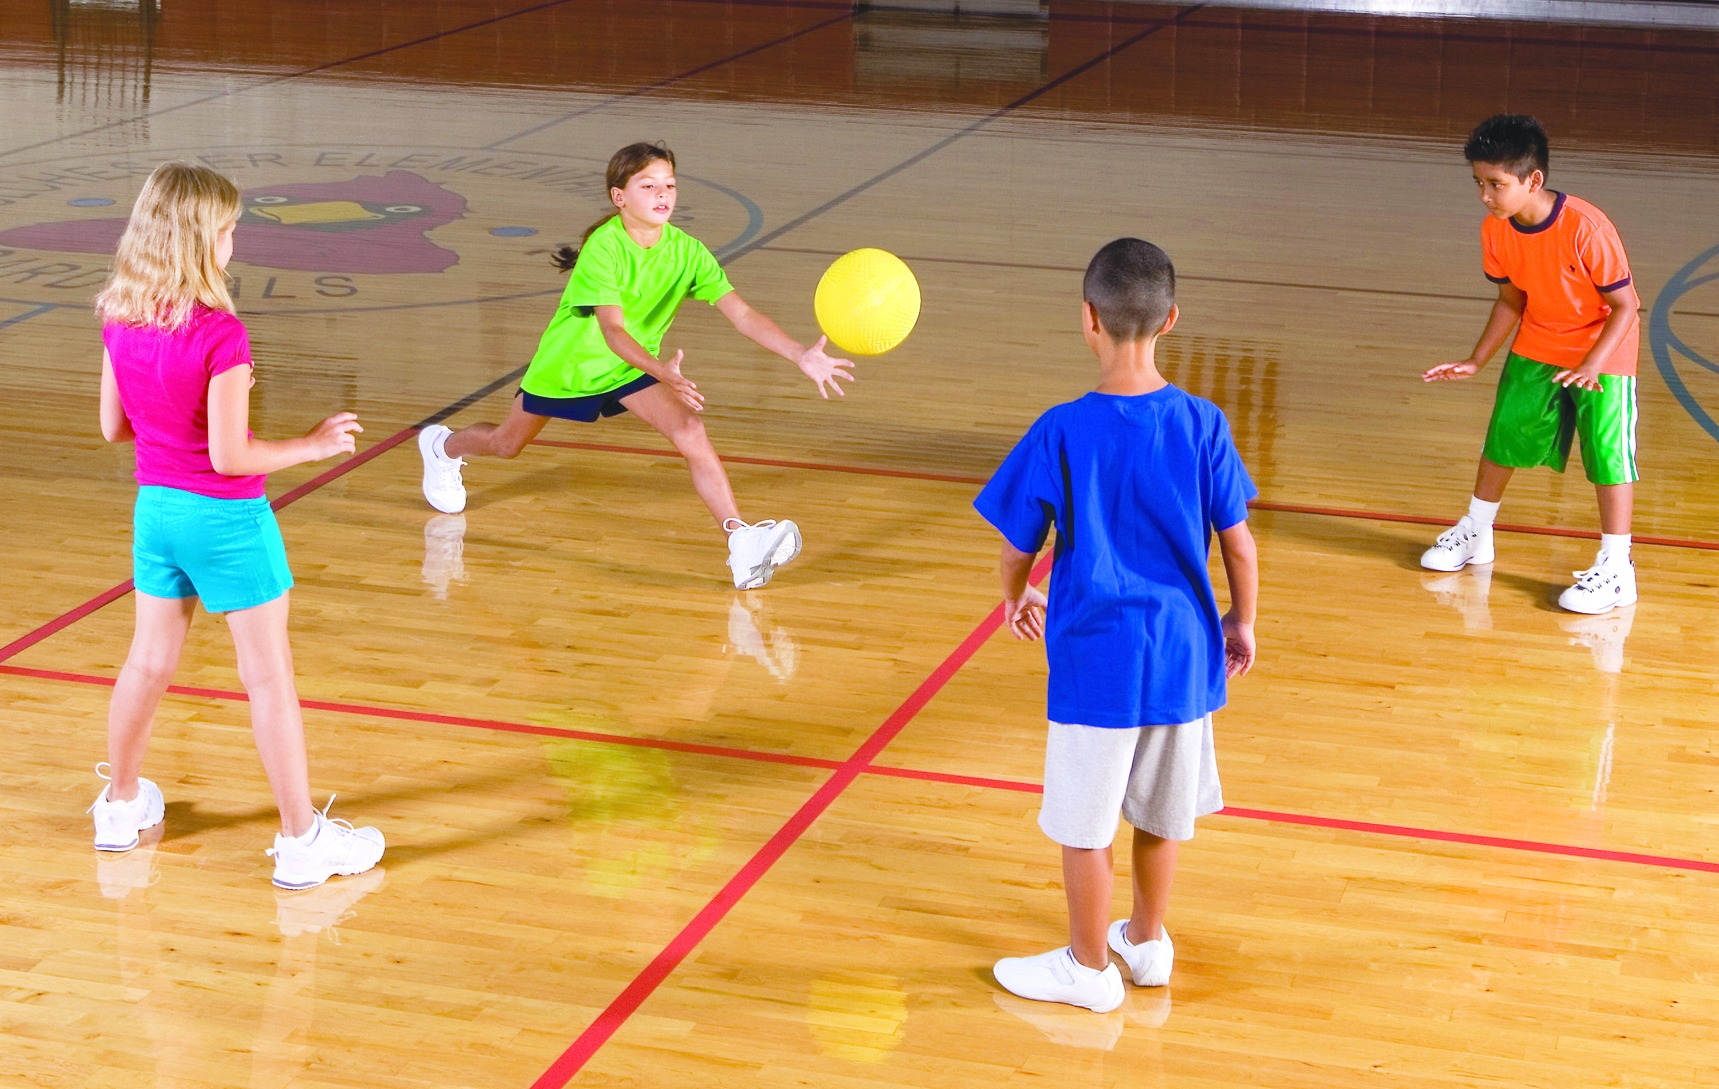 physicall education Portland community college physical education promotes fit and healthy lifestyles for a diverse group of students by delivering a quality education that includes the knowledge, skills, and practice.